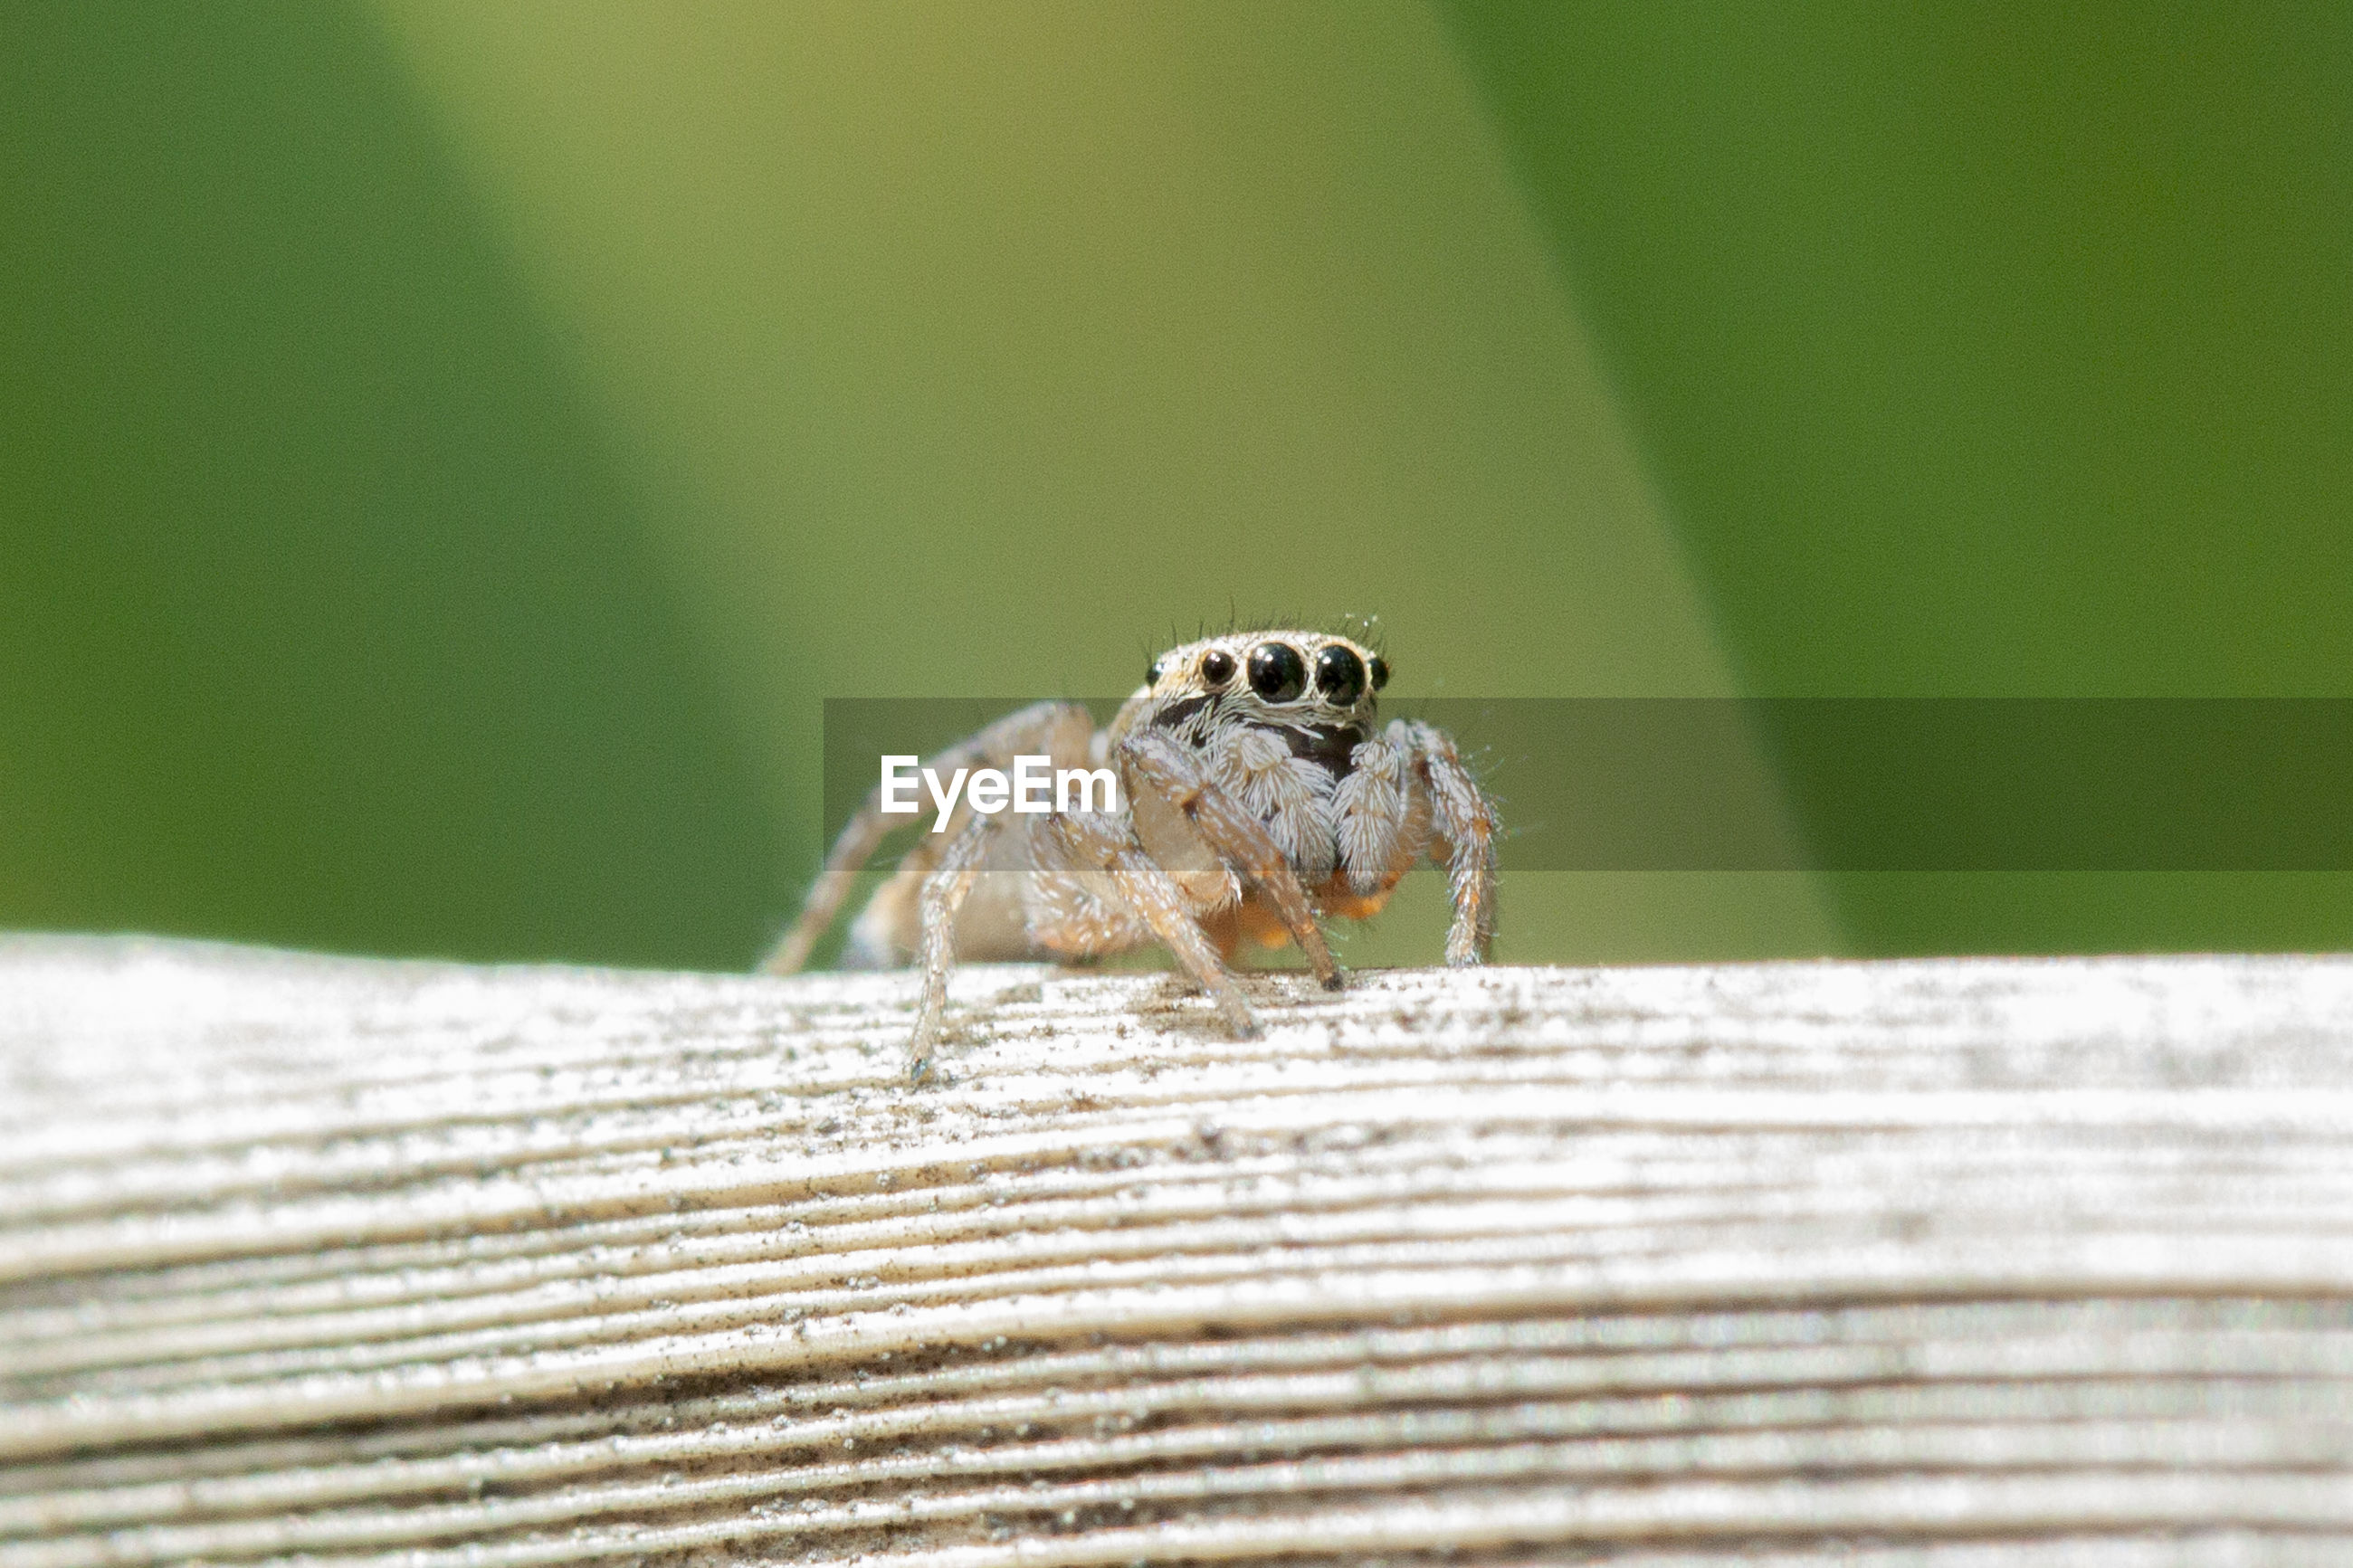 CLOSE-UP OF SPIDER ON WOODEN WALL